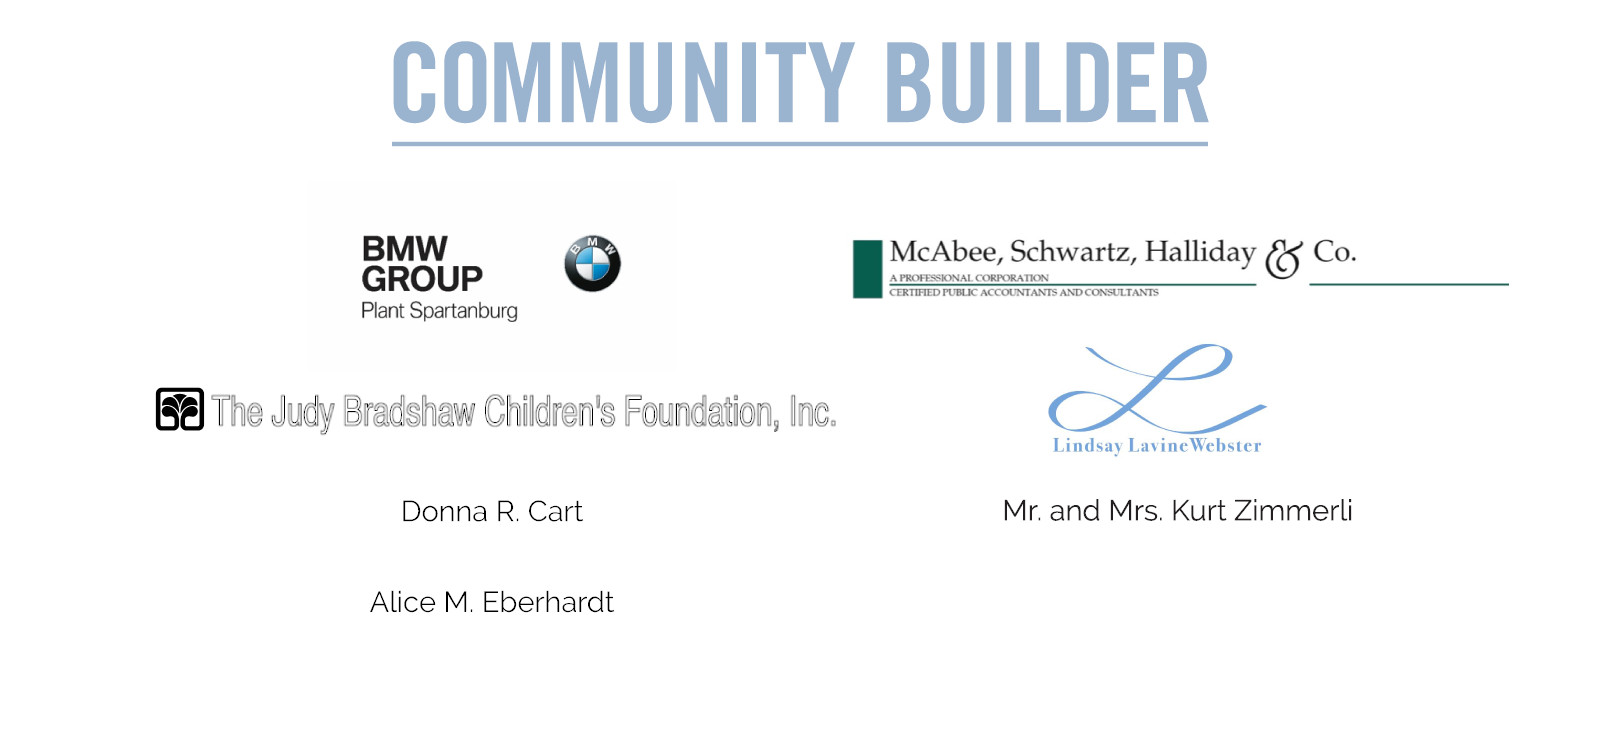 Community Builder Sponsorship